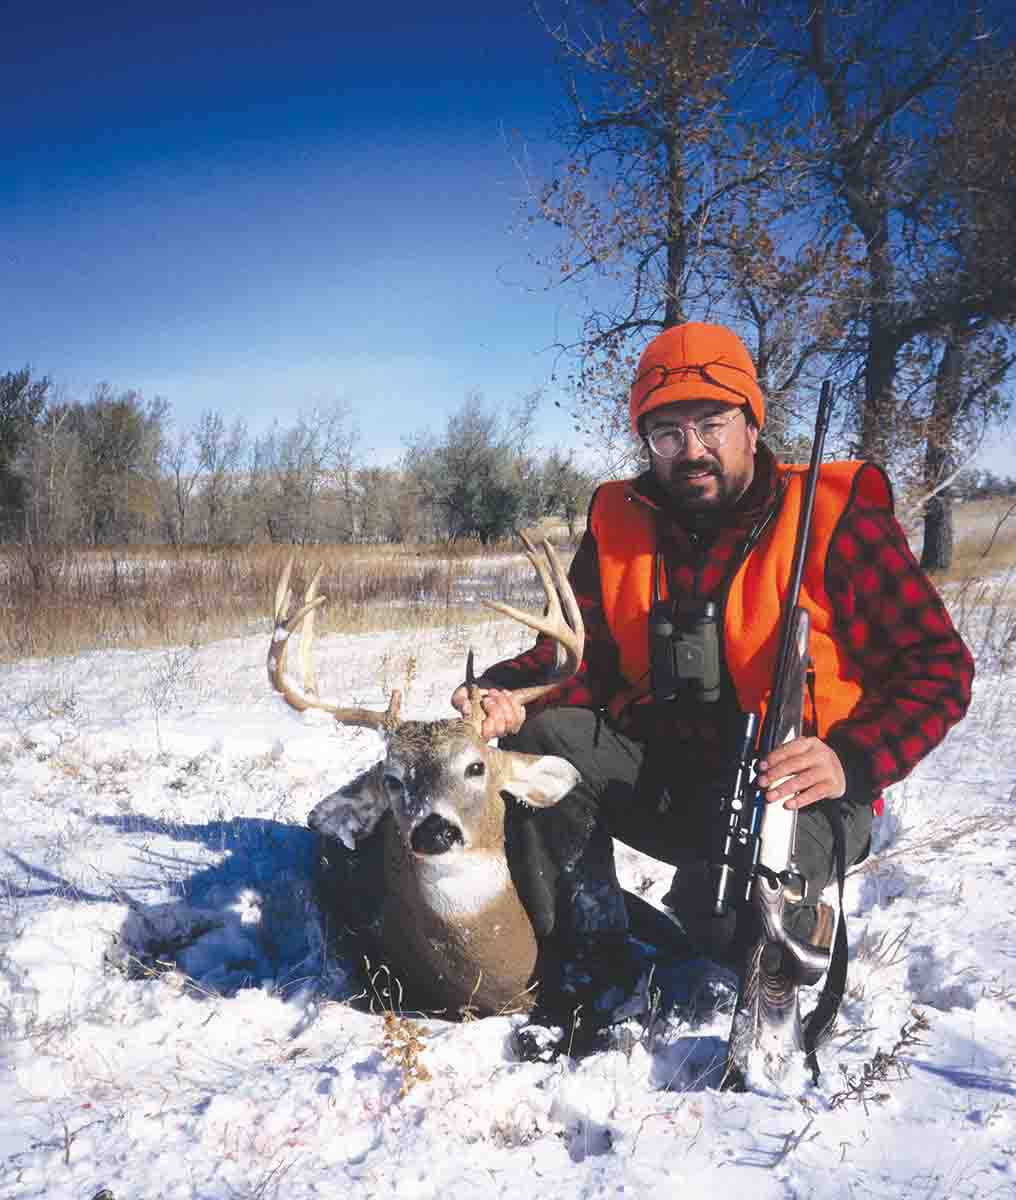 The 7mm Remington Magnum works very well as an all-around cartridge for both deer and larger game. John shot this whitetail buck in 1991 with a Browning A-Bolt.